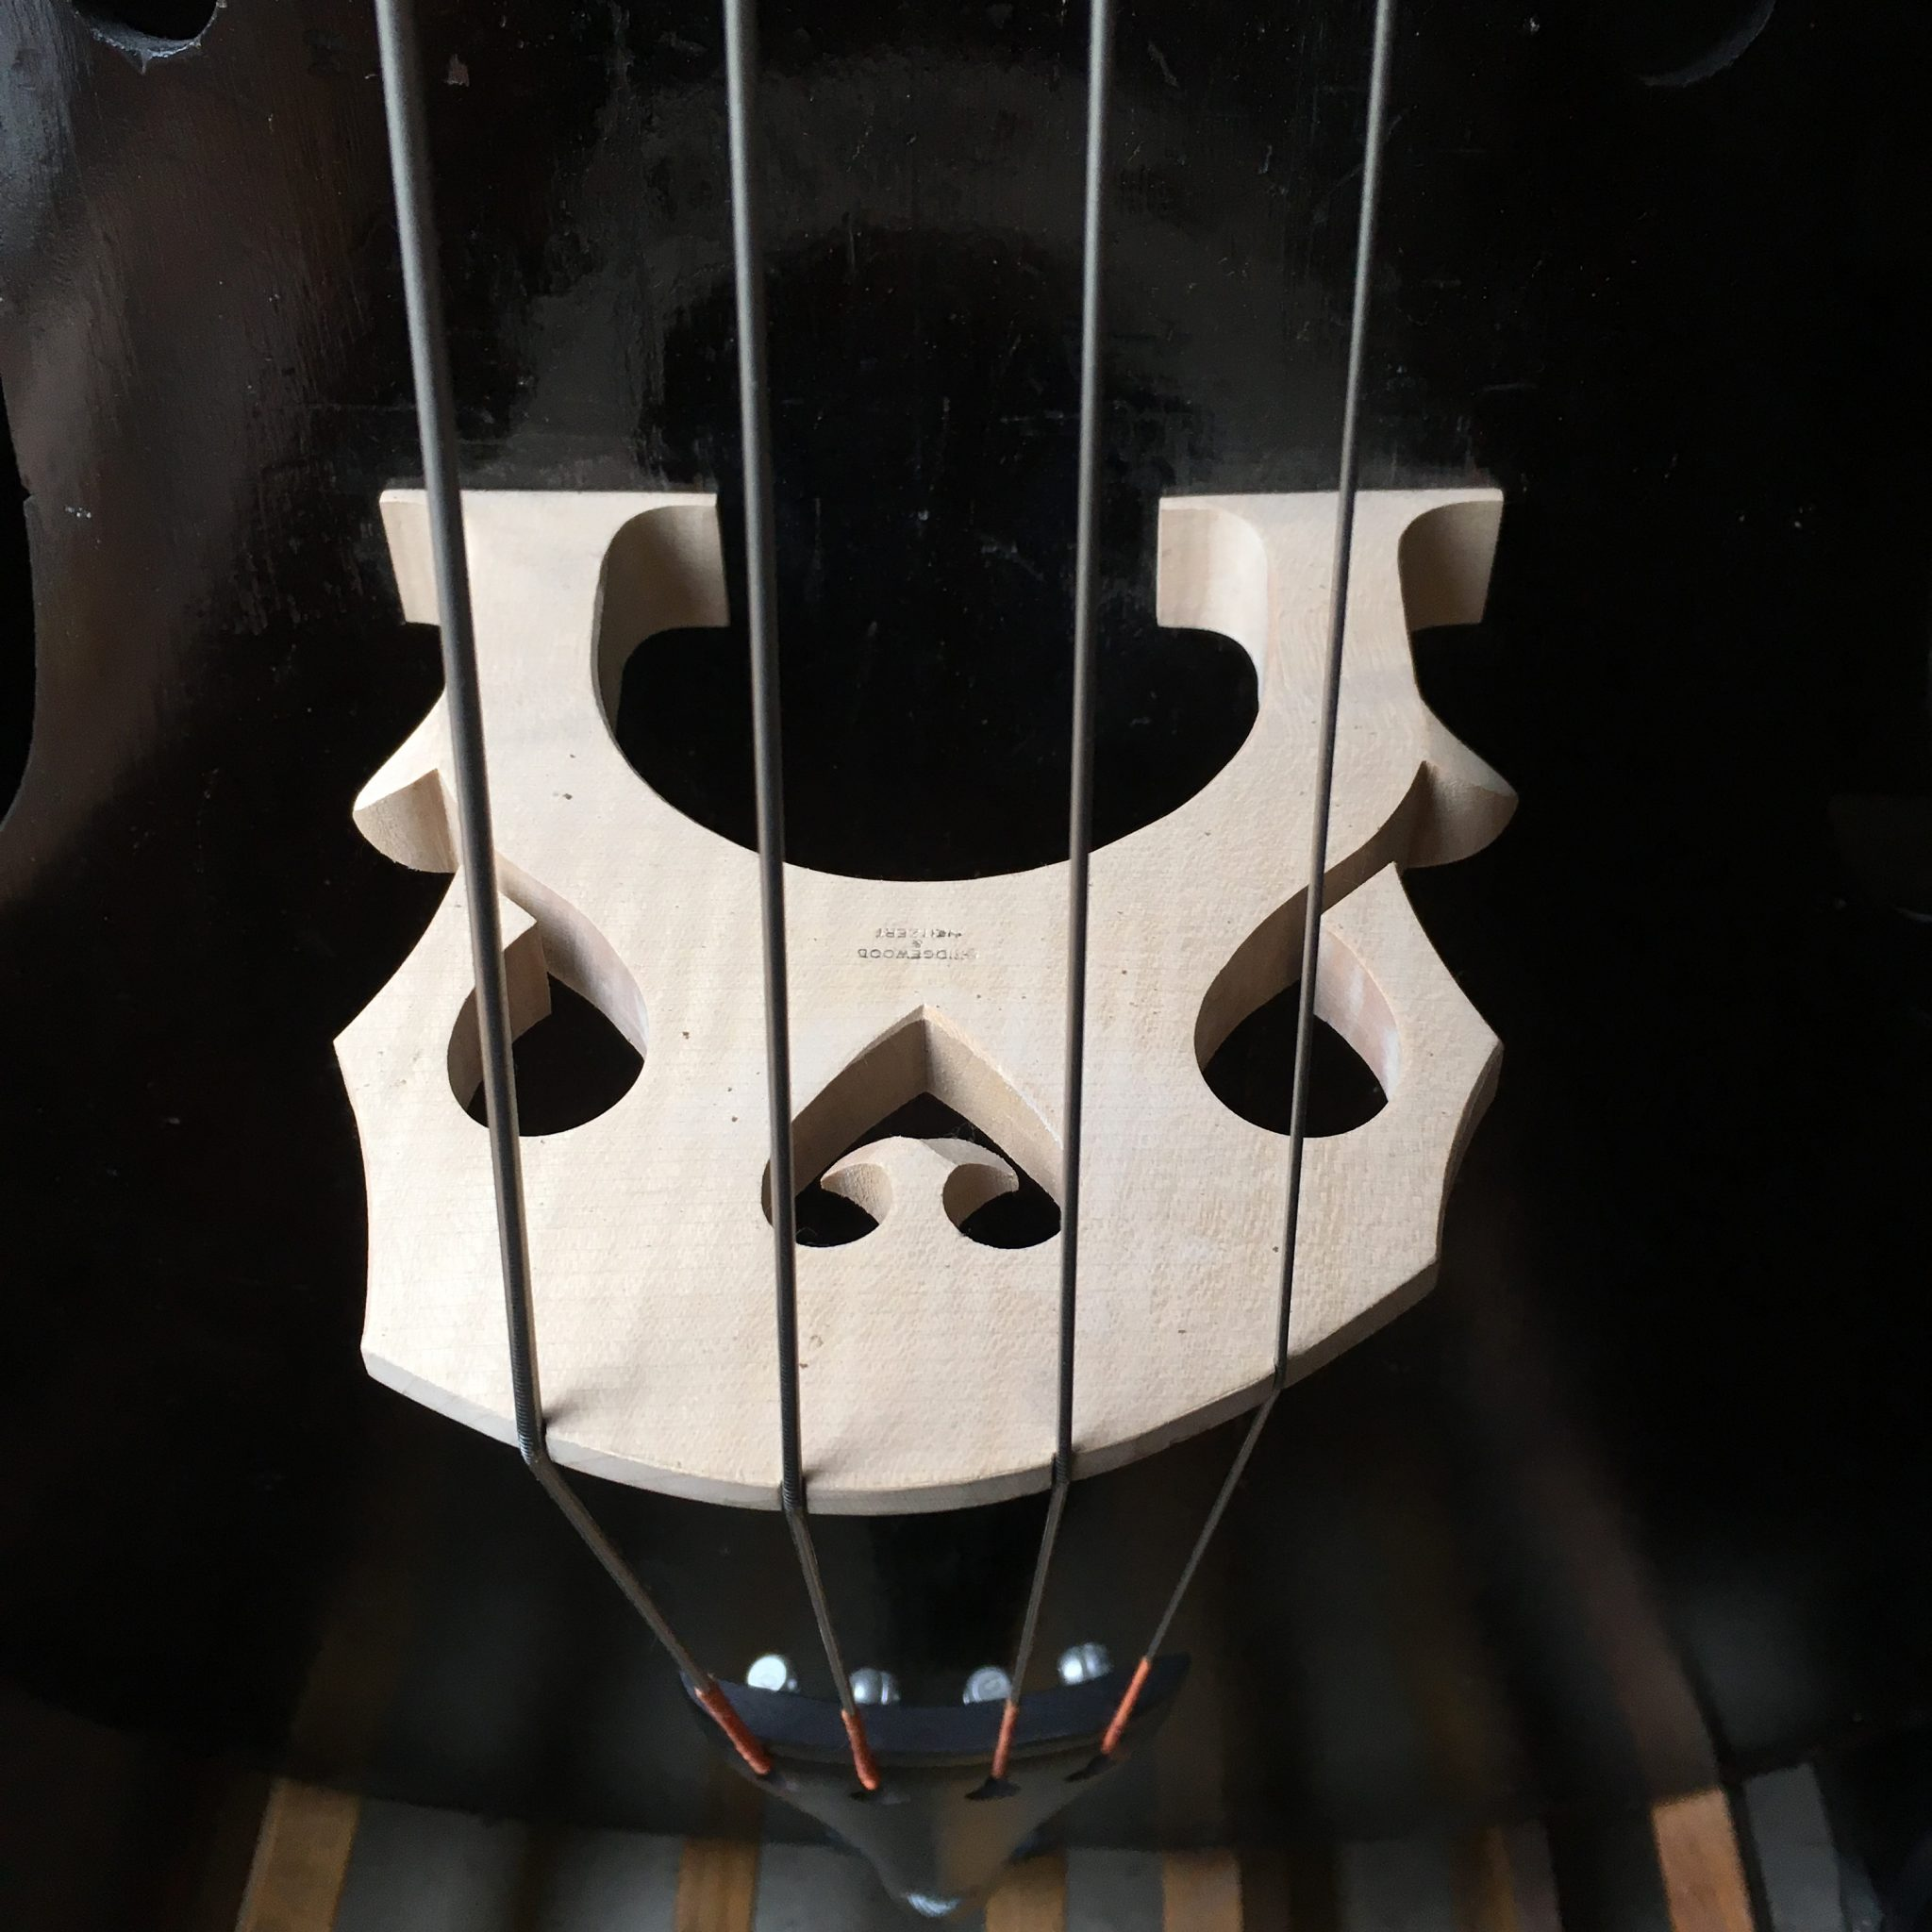 German double bass c1850 for sale at Bridgewood and Neitzert London